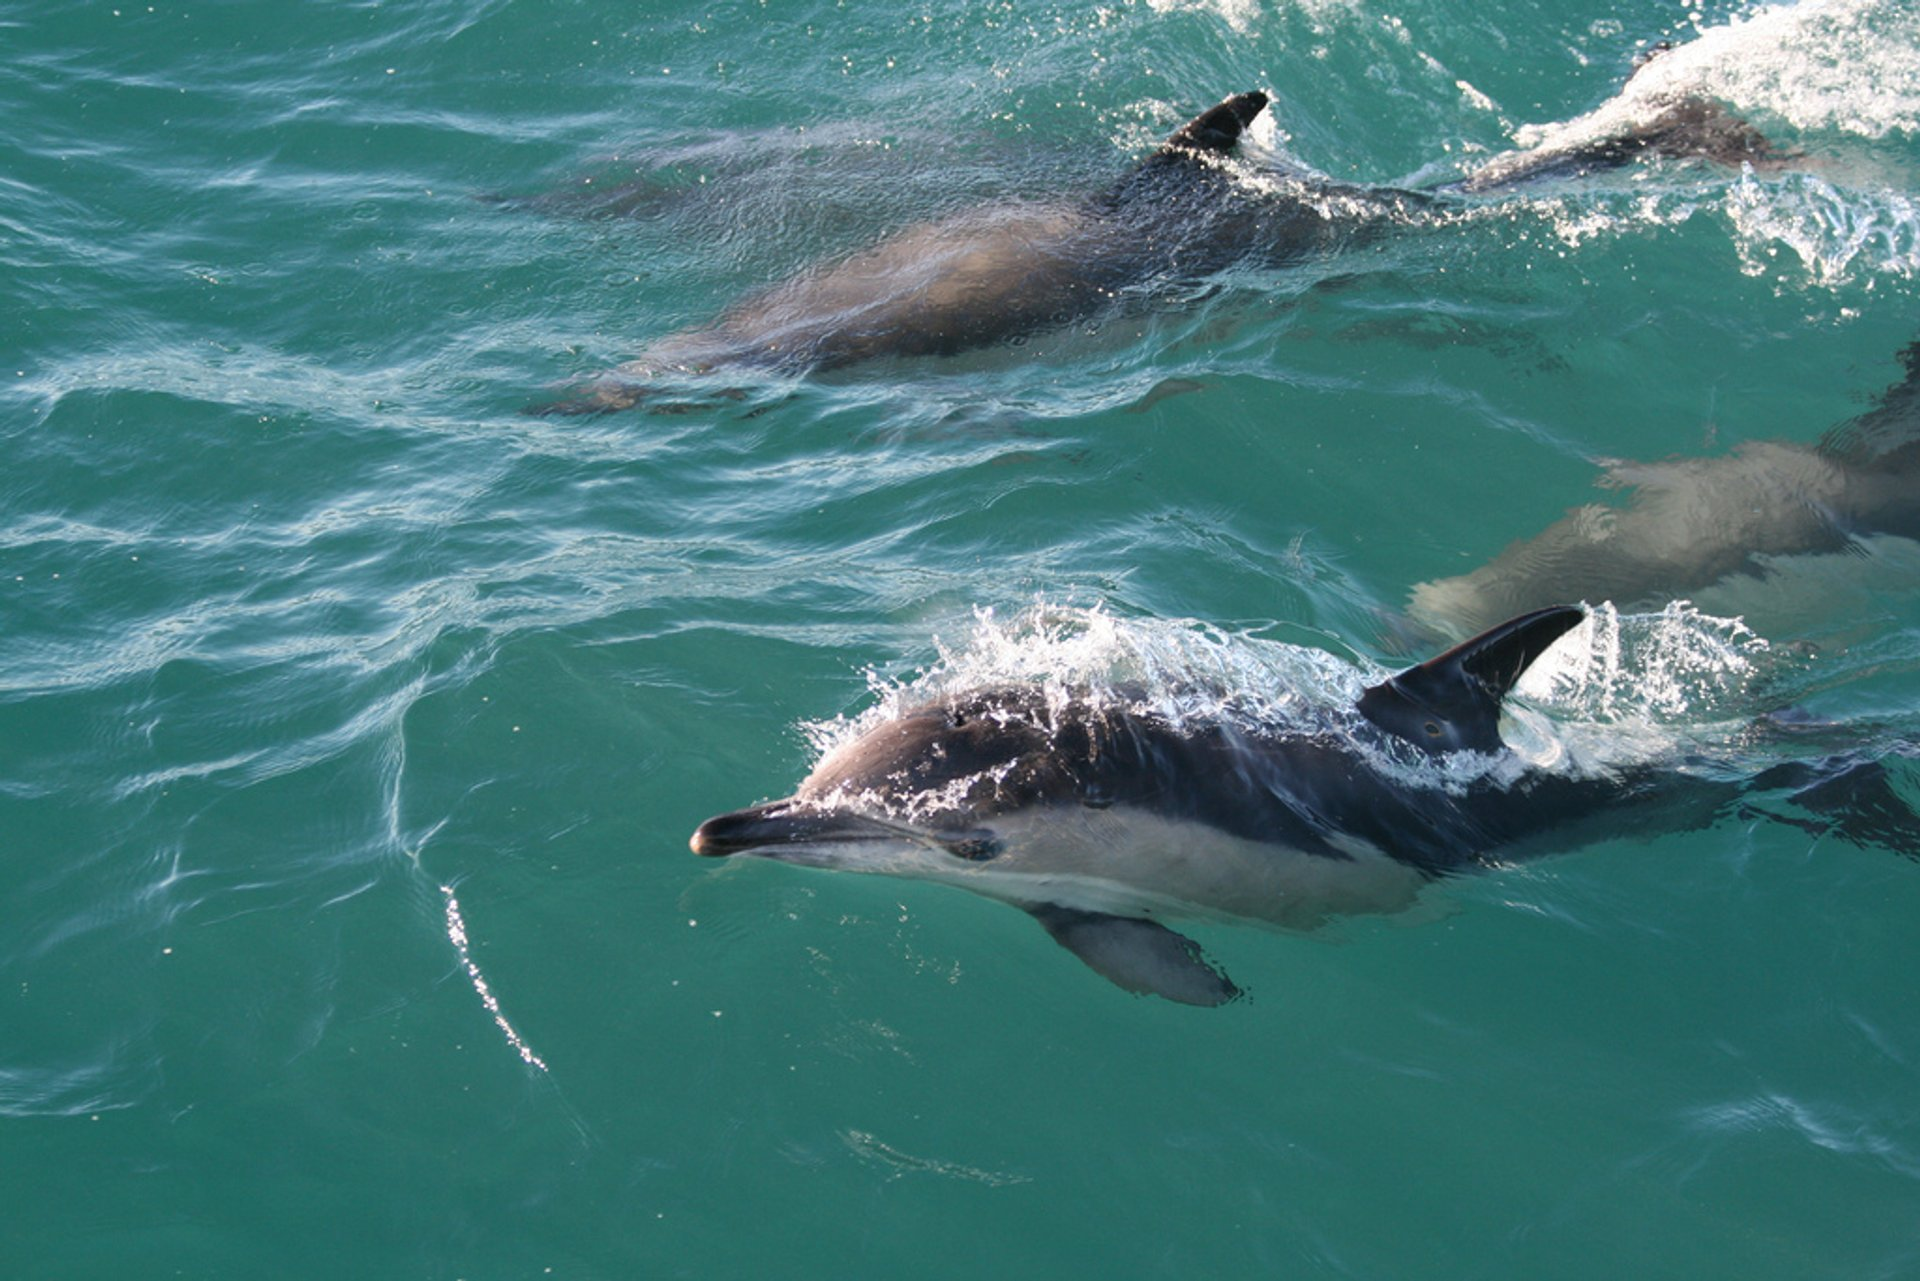 Common Dolphin in Ireland 2020 - Best Time